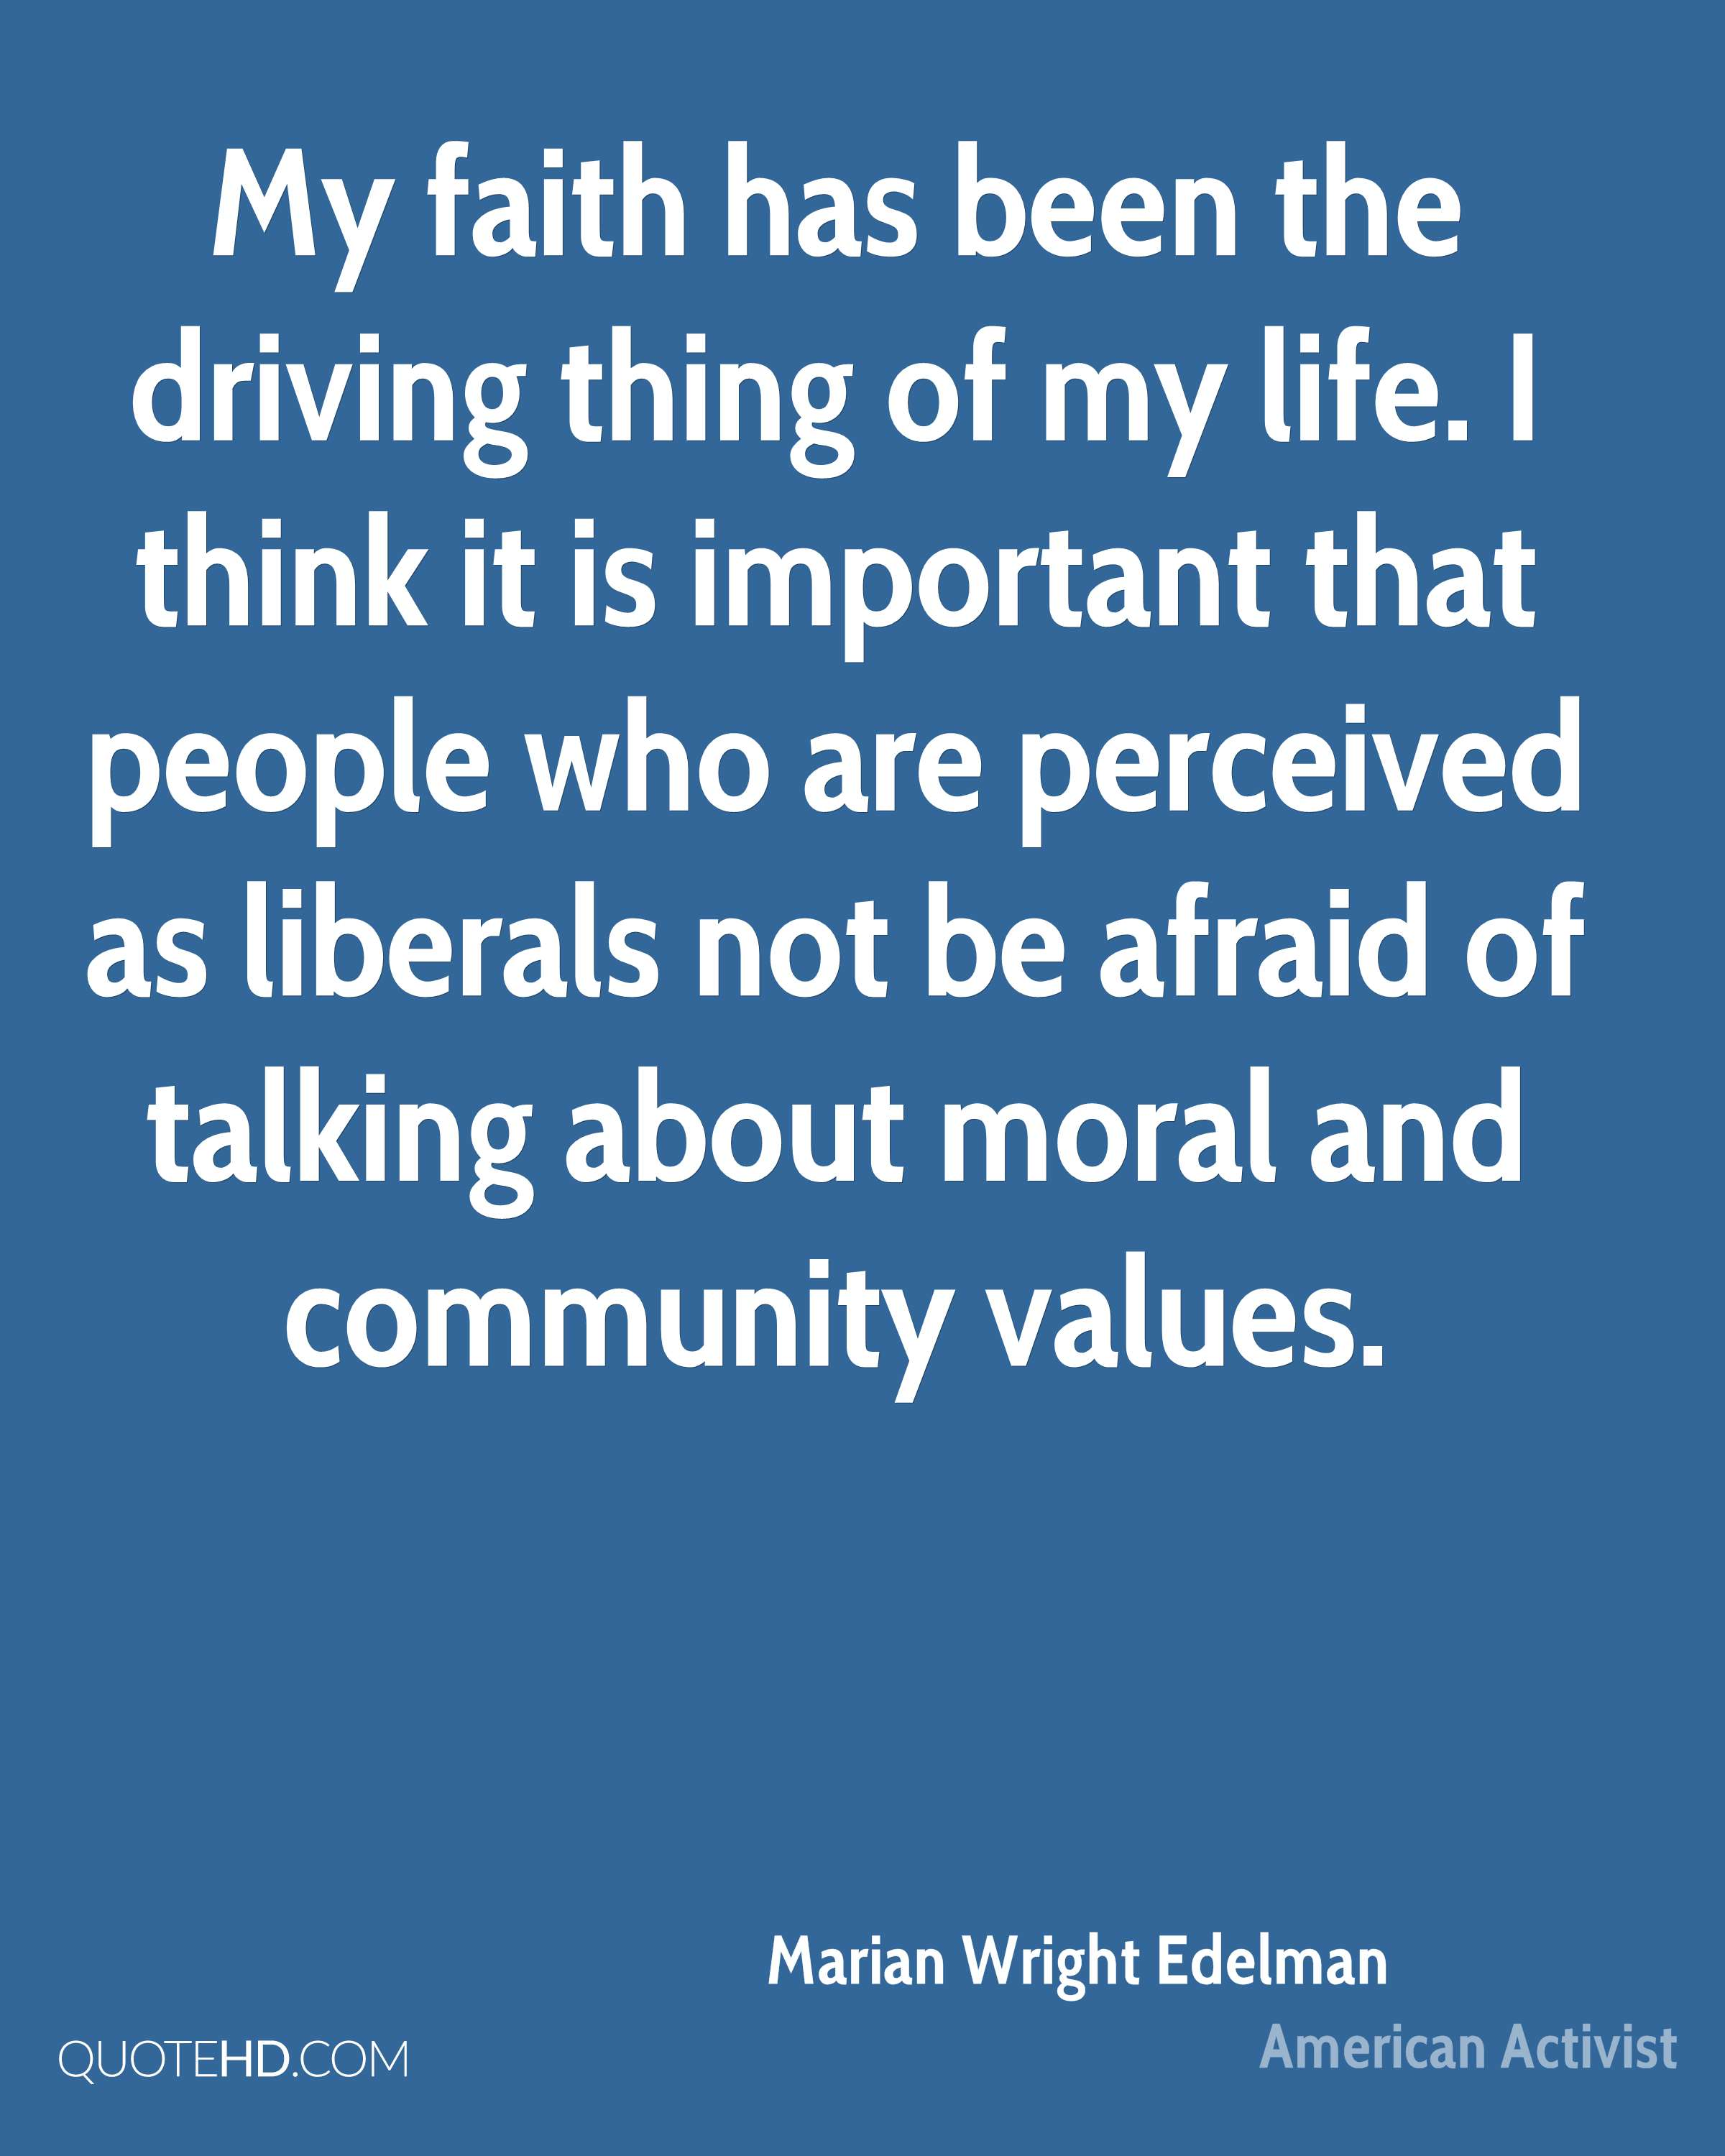 My faith has been the driving thing of my life. I think it is important that people who are perceived as liberals not be afraid of talking about moral and community values.